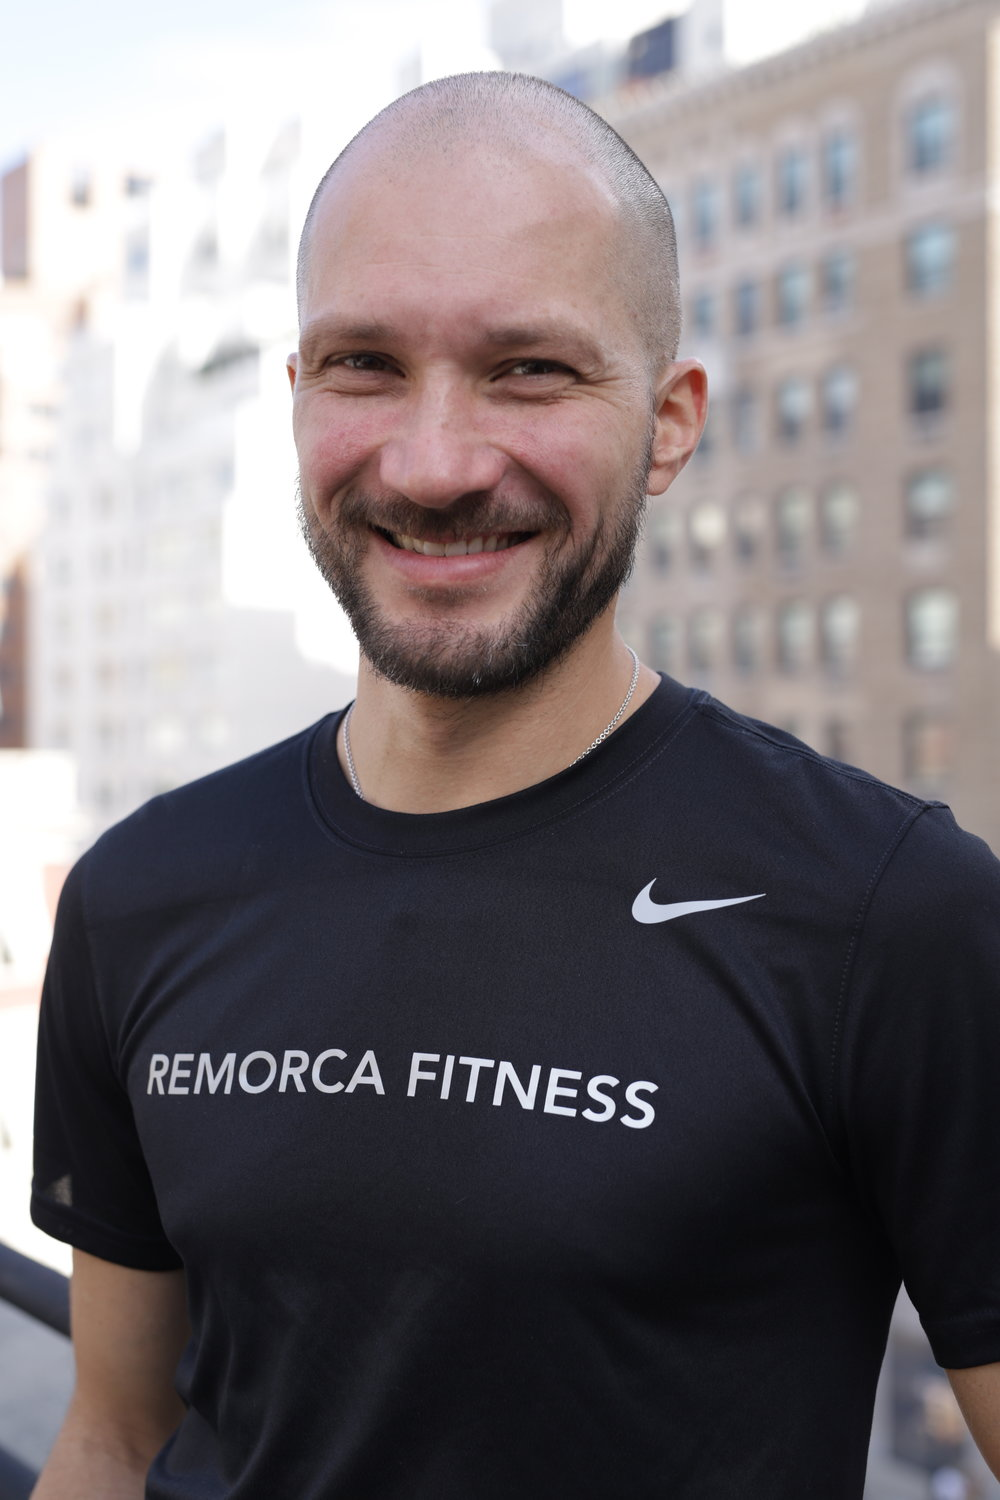 GIRAY - CO-OWNER REMORCA FITNESS UPPER EAST SIDECERTIFICATIONS:EDUCATION:SPECIALTY/EXPERTISE:FITNESS HOBBIES:NON FITNESS THING ABOUT ME